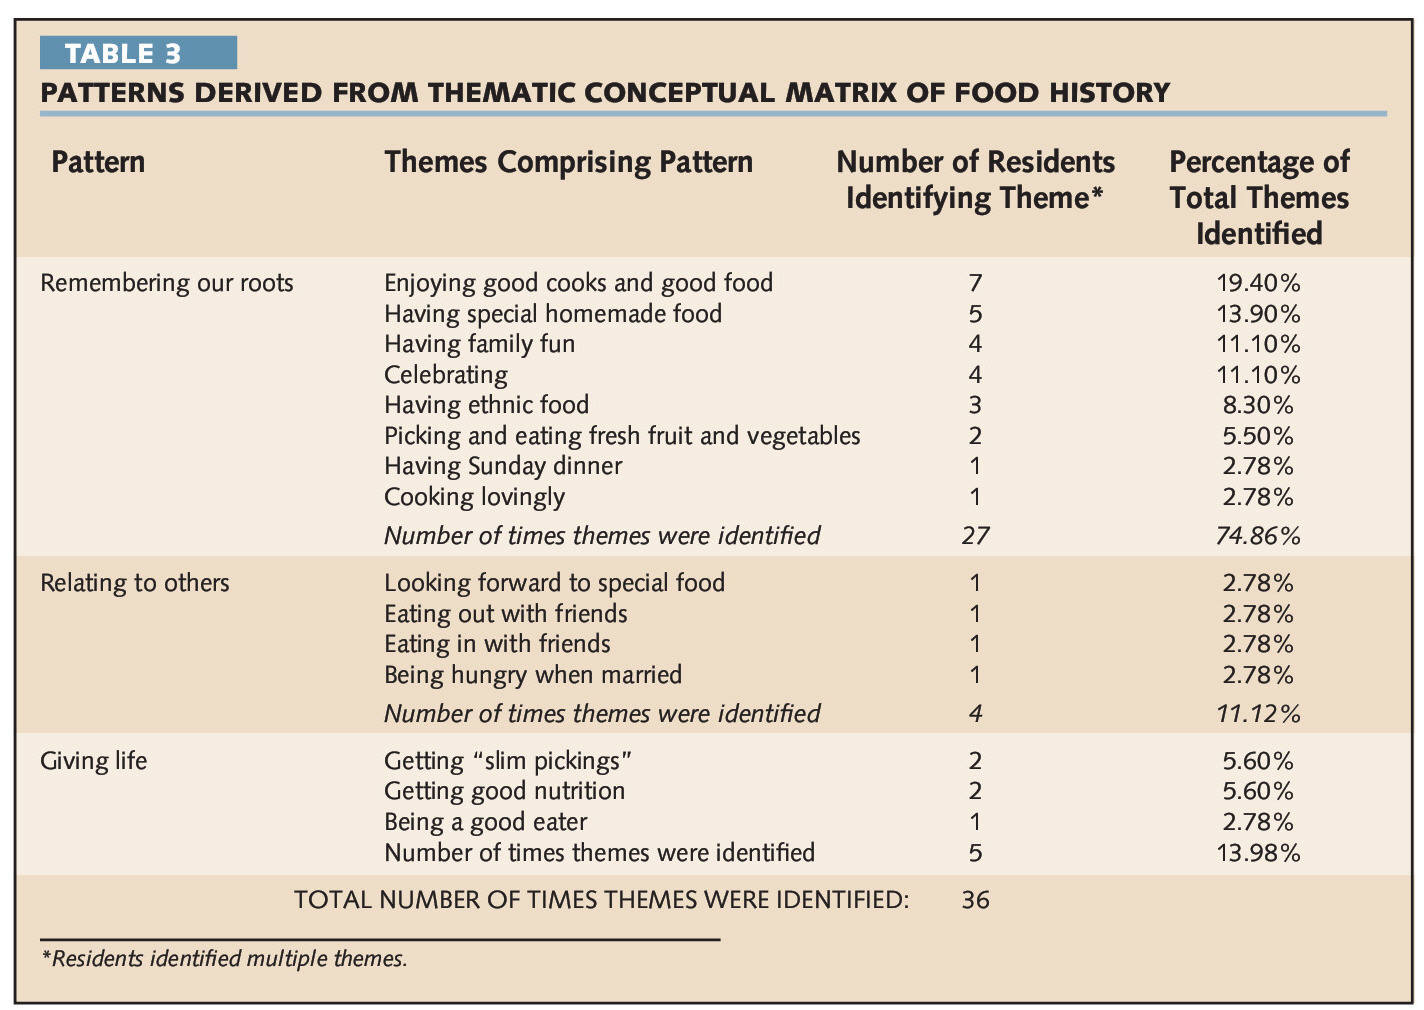 TABLE 3PATTERNS DERIVED FROM THEMATIC CONCEPTUAL MATRIX OF FOOD HISTORY